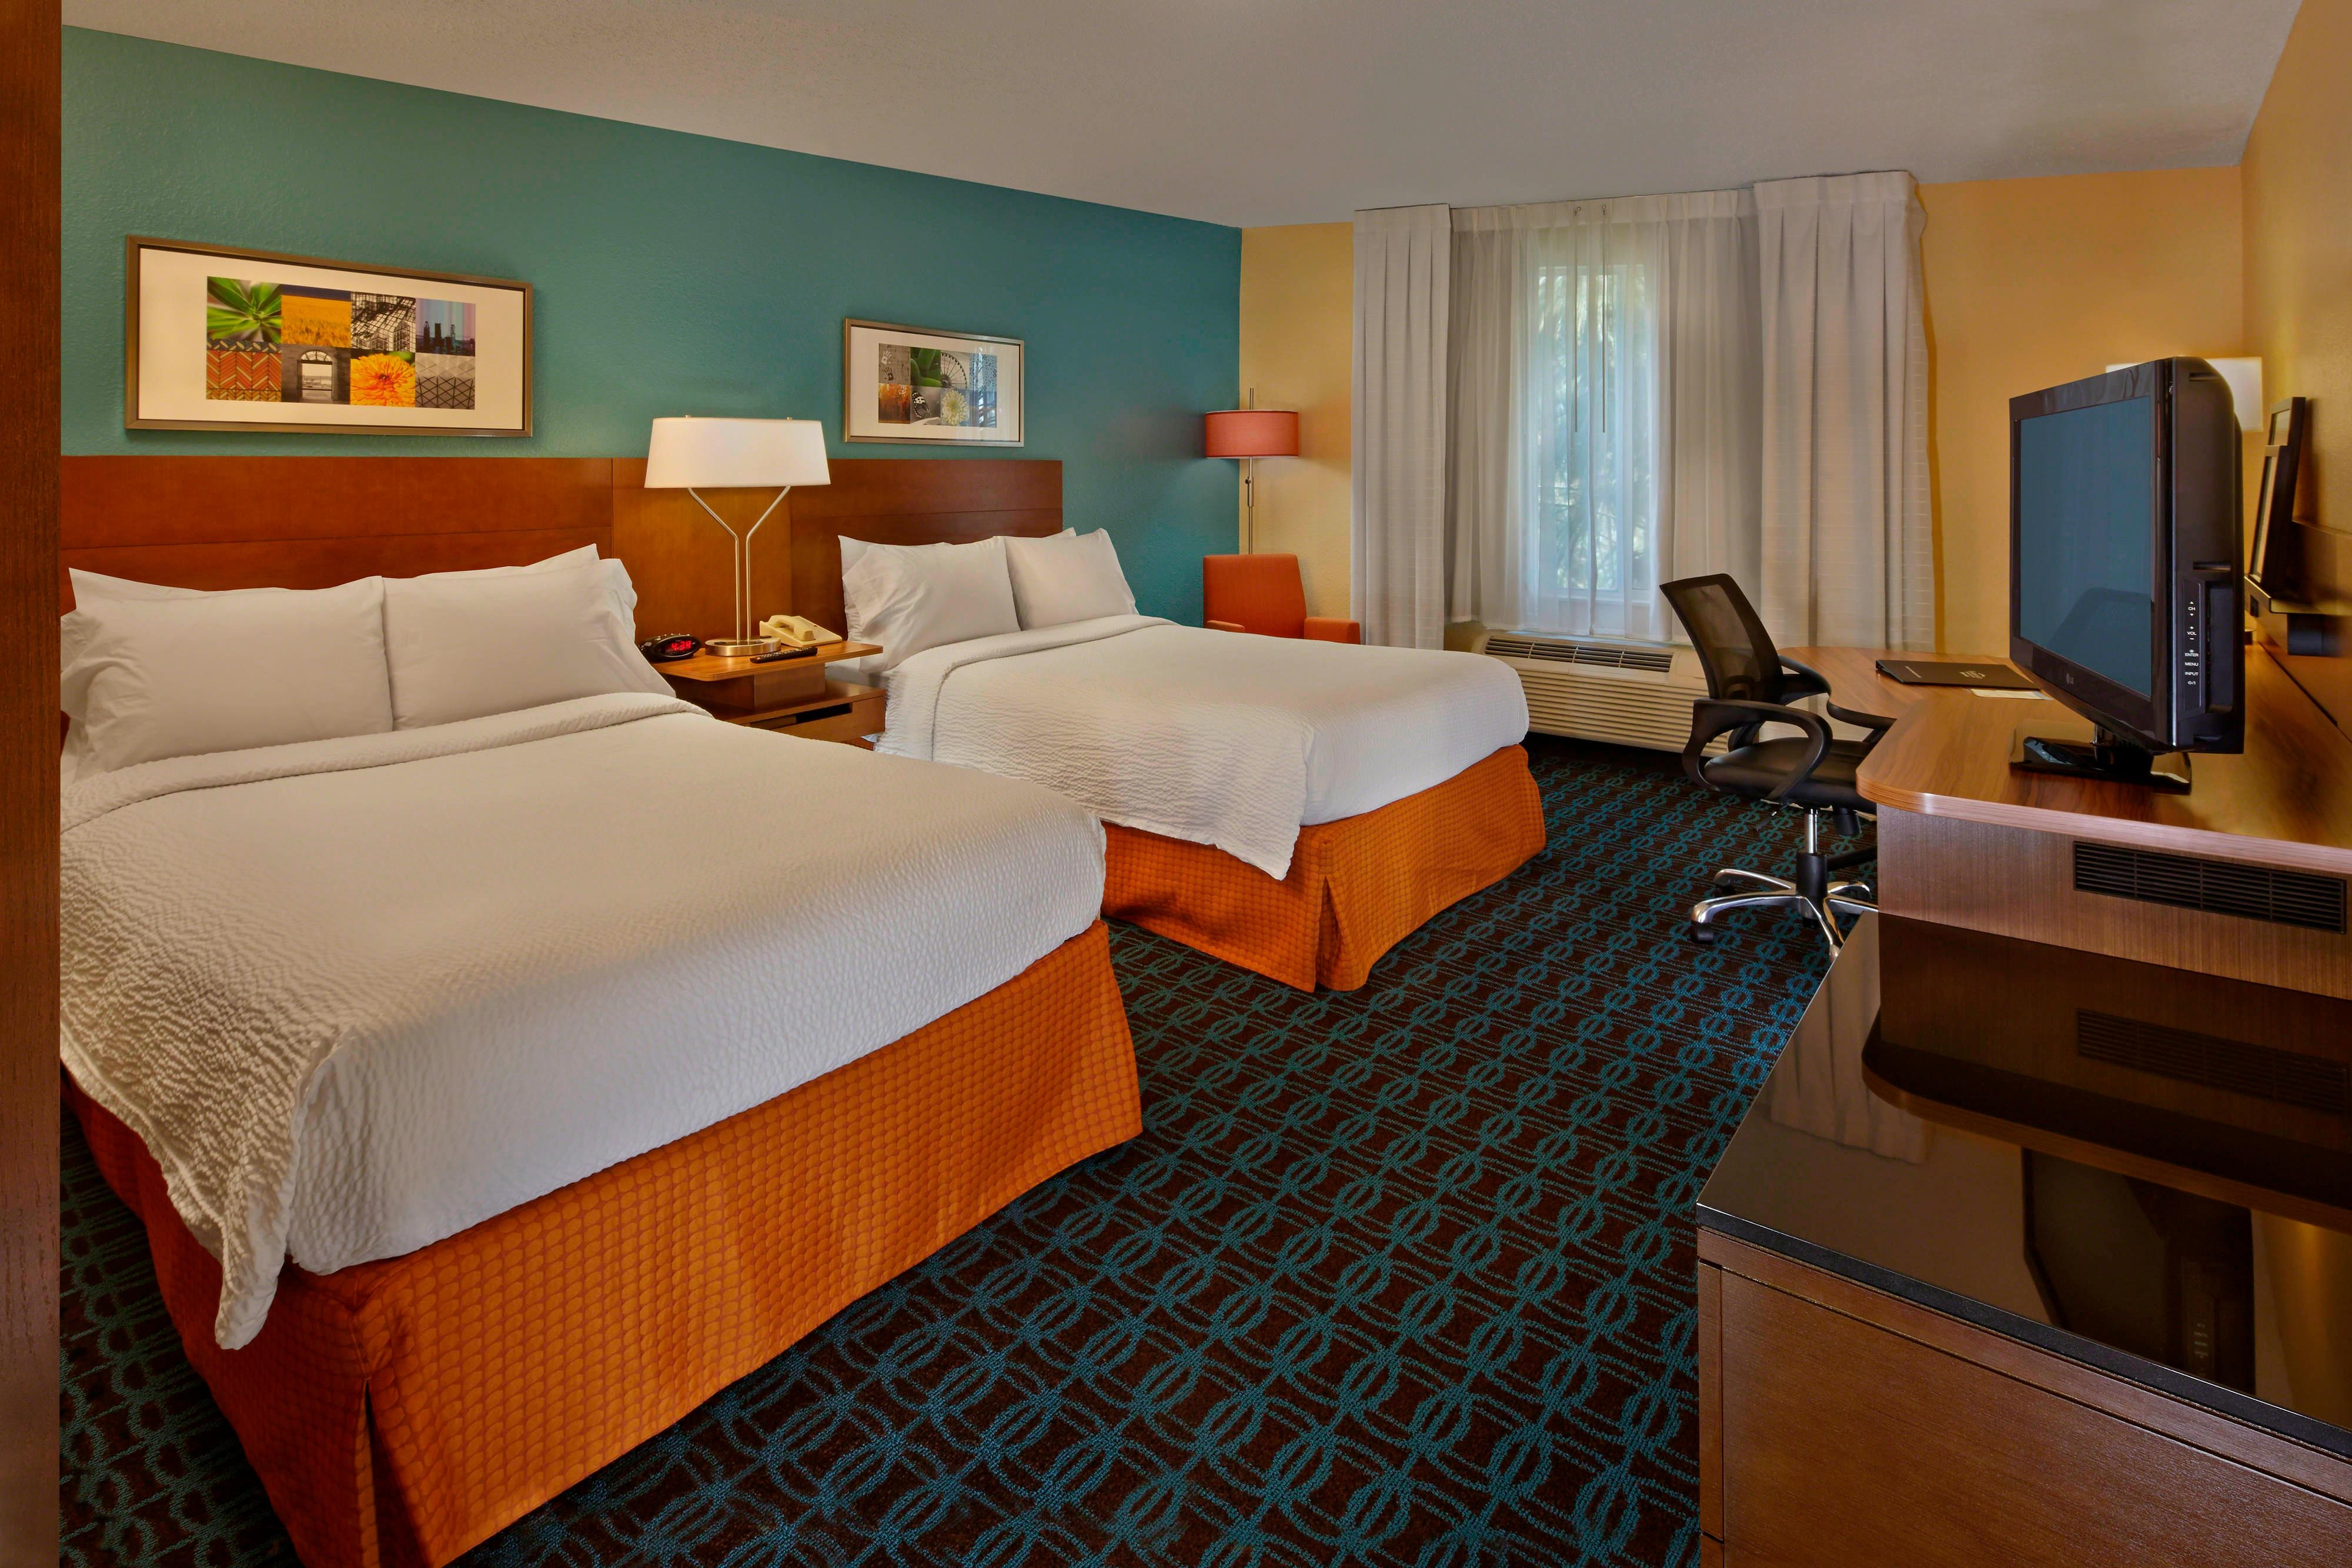 Fairfield Inn & Suites, Boca Raton Hotel Rooms